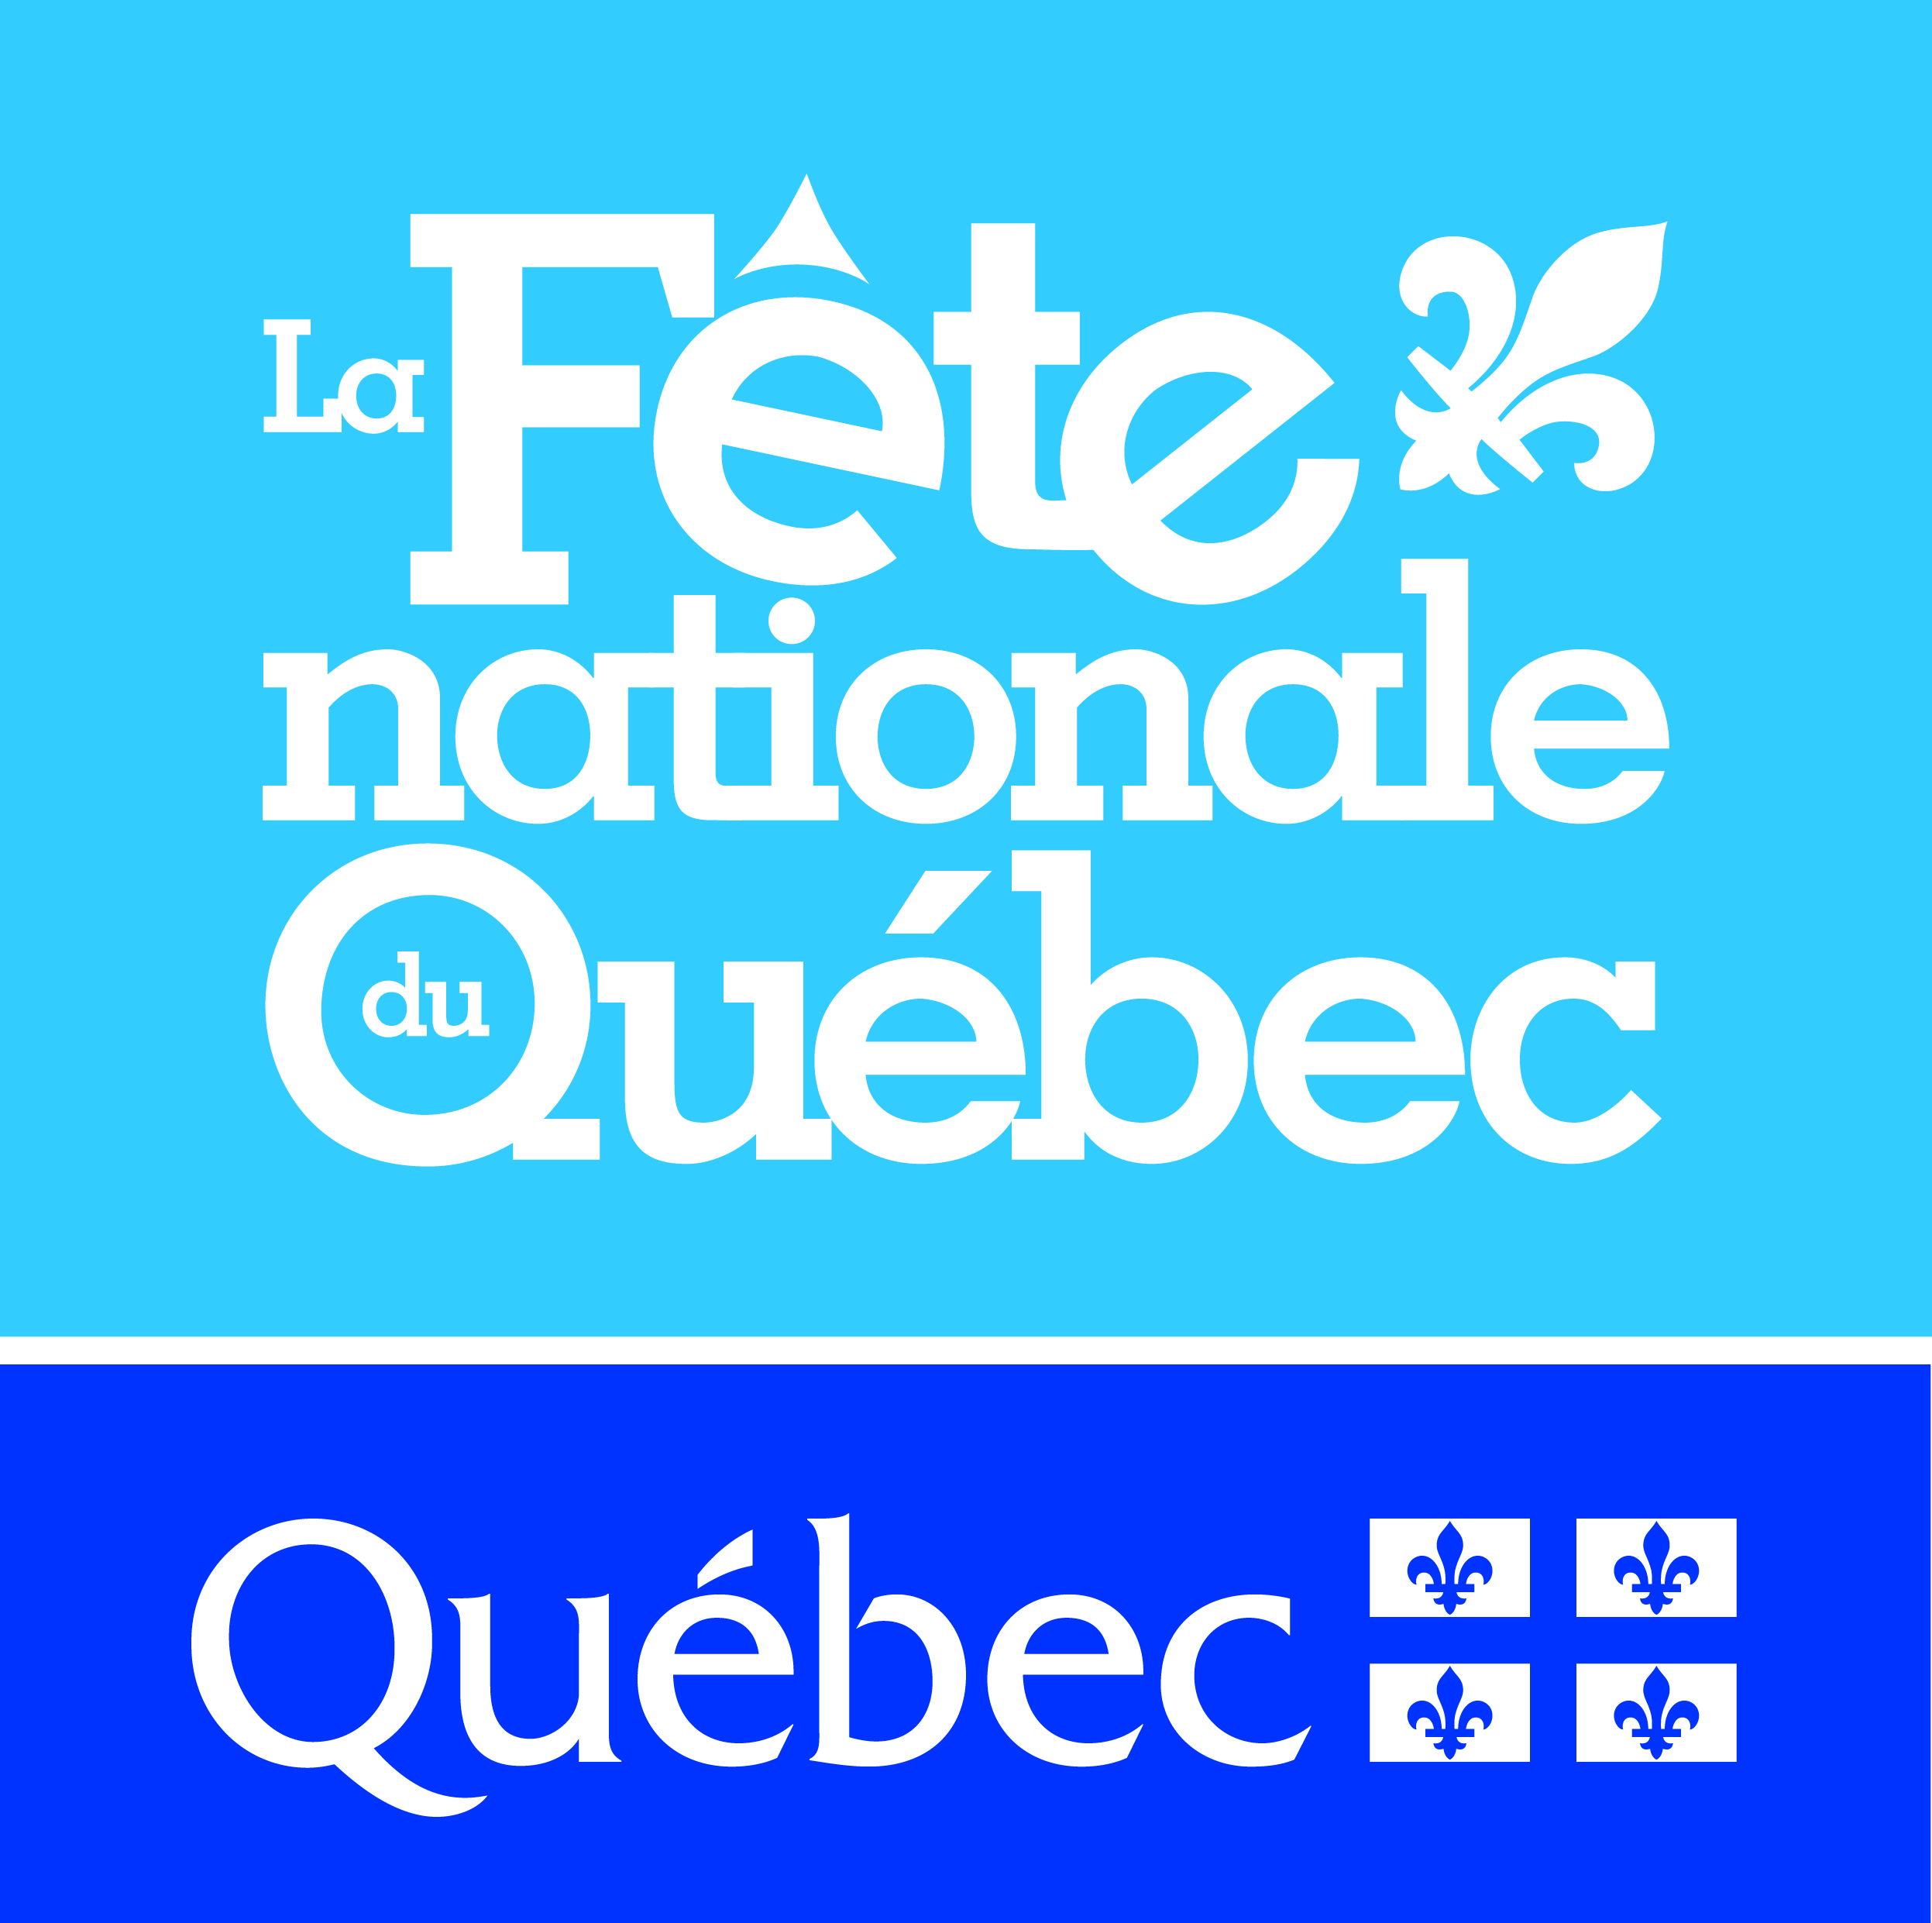 Fête Nationale/St. John the Baptist Feast Day Celebration